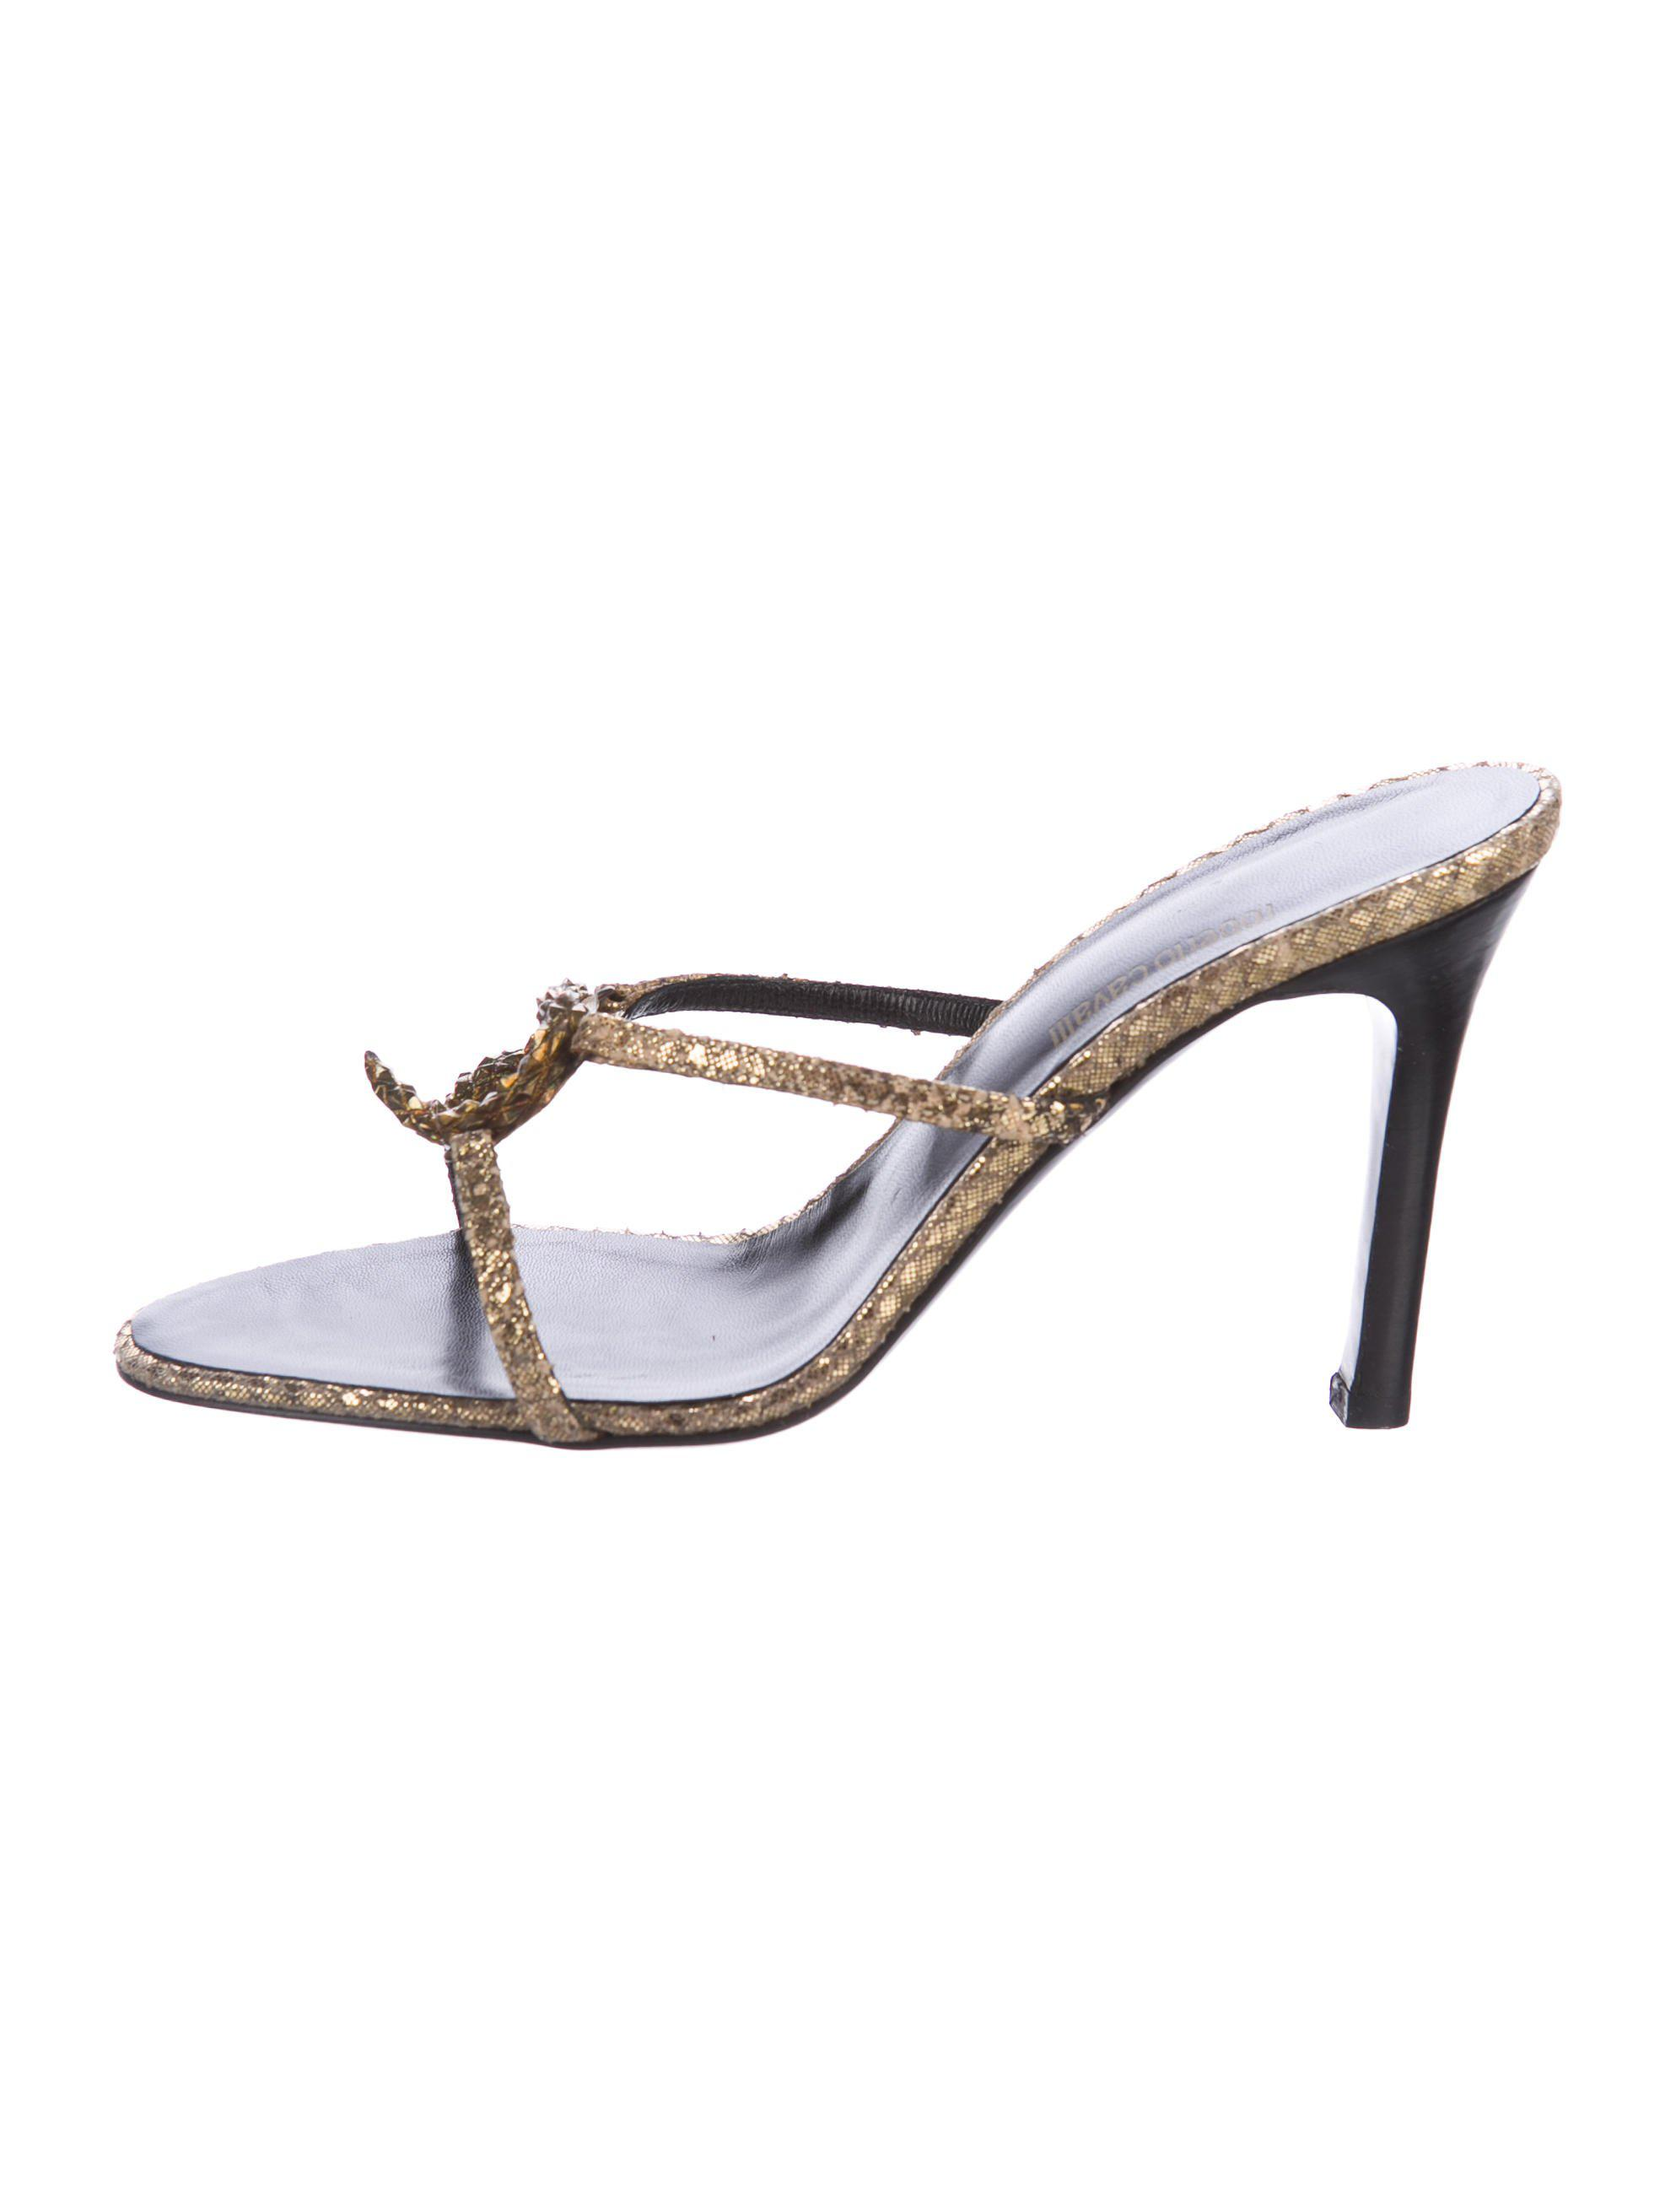 sale geniue stockist Roberto Cavalli Embossed Metallic Sandals buy cheap pay with visa free shipping online low price online hot sale sale online rOCCngb